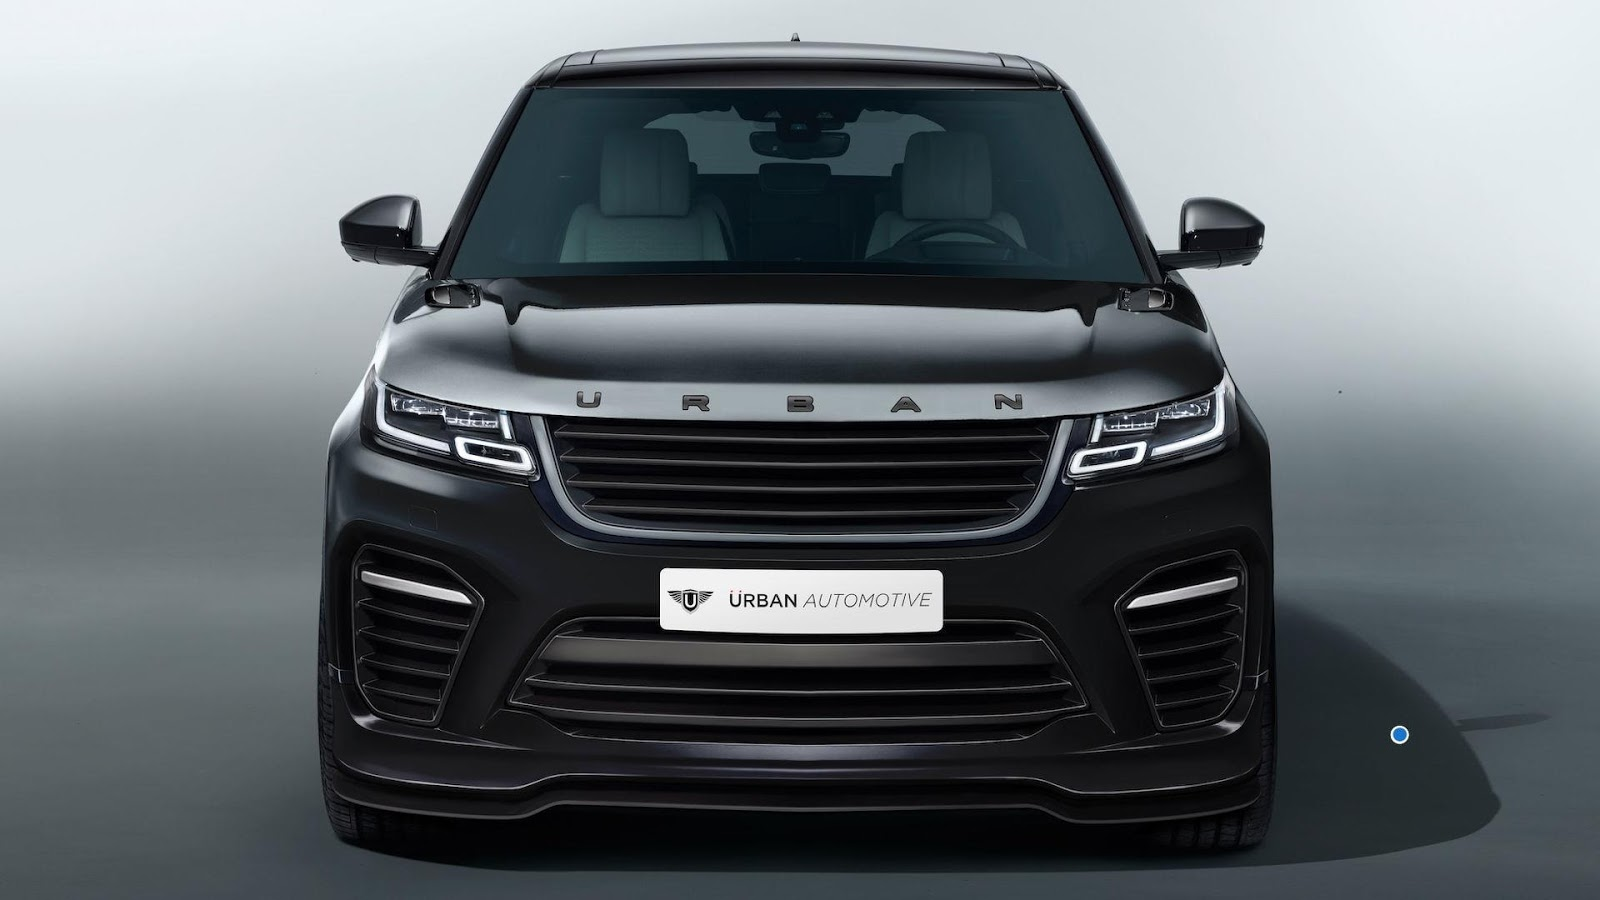 Urban Automotive S Range Rover Velar Is Almost An Svr